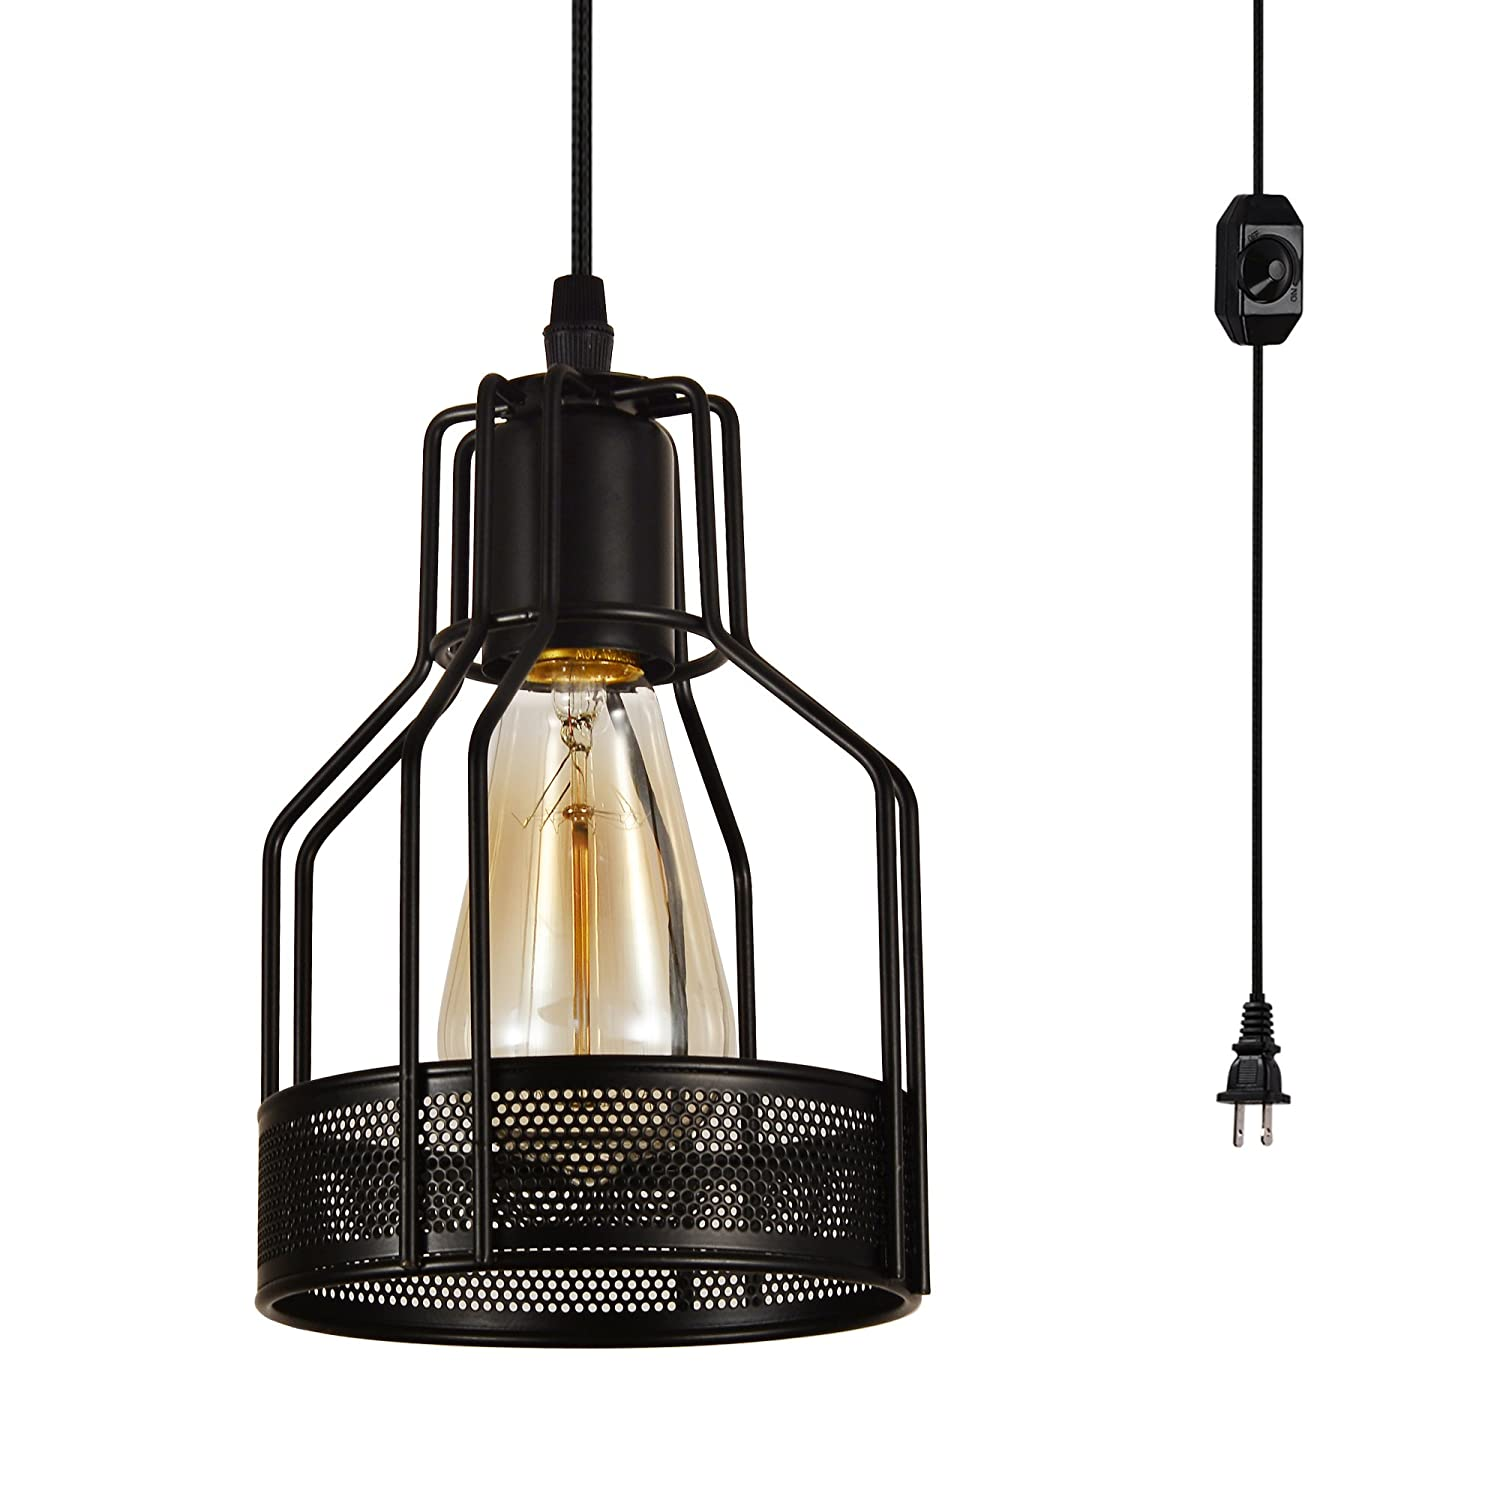 HMVPL Industrial Pendant Light with 16.4 Ft Plug in Cord and On/Off Dimmer Switch, Vintage Cage Swag Hanging Ceiling Lamps for Kitchen Island Dining Room or Living Room, Painted Finish